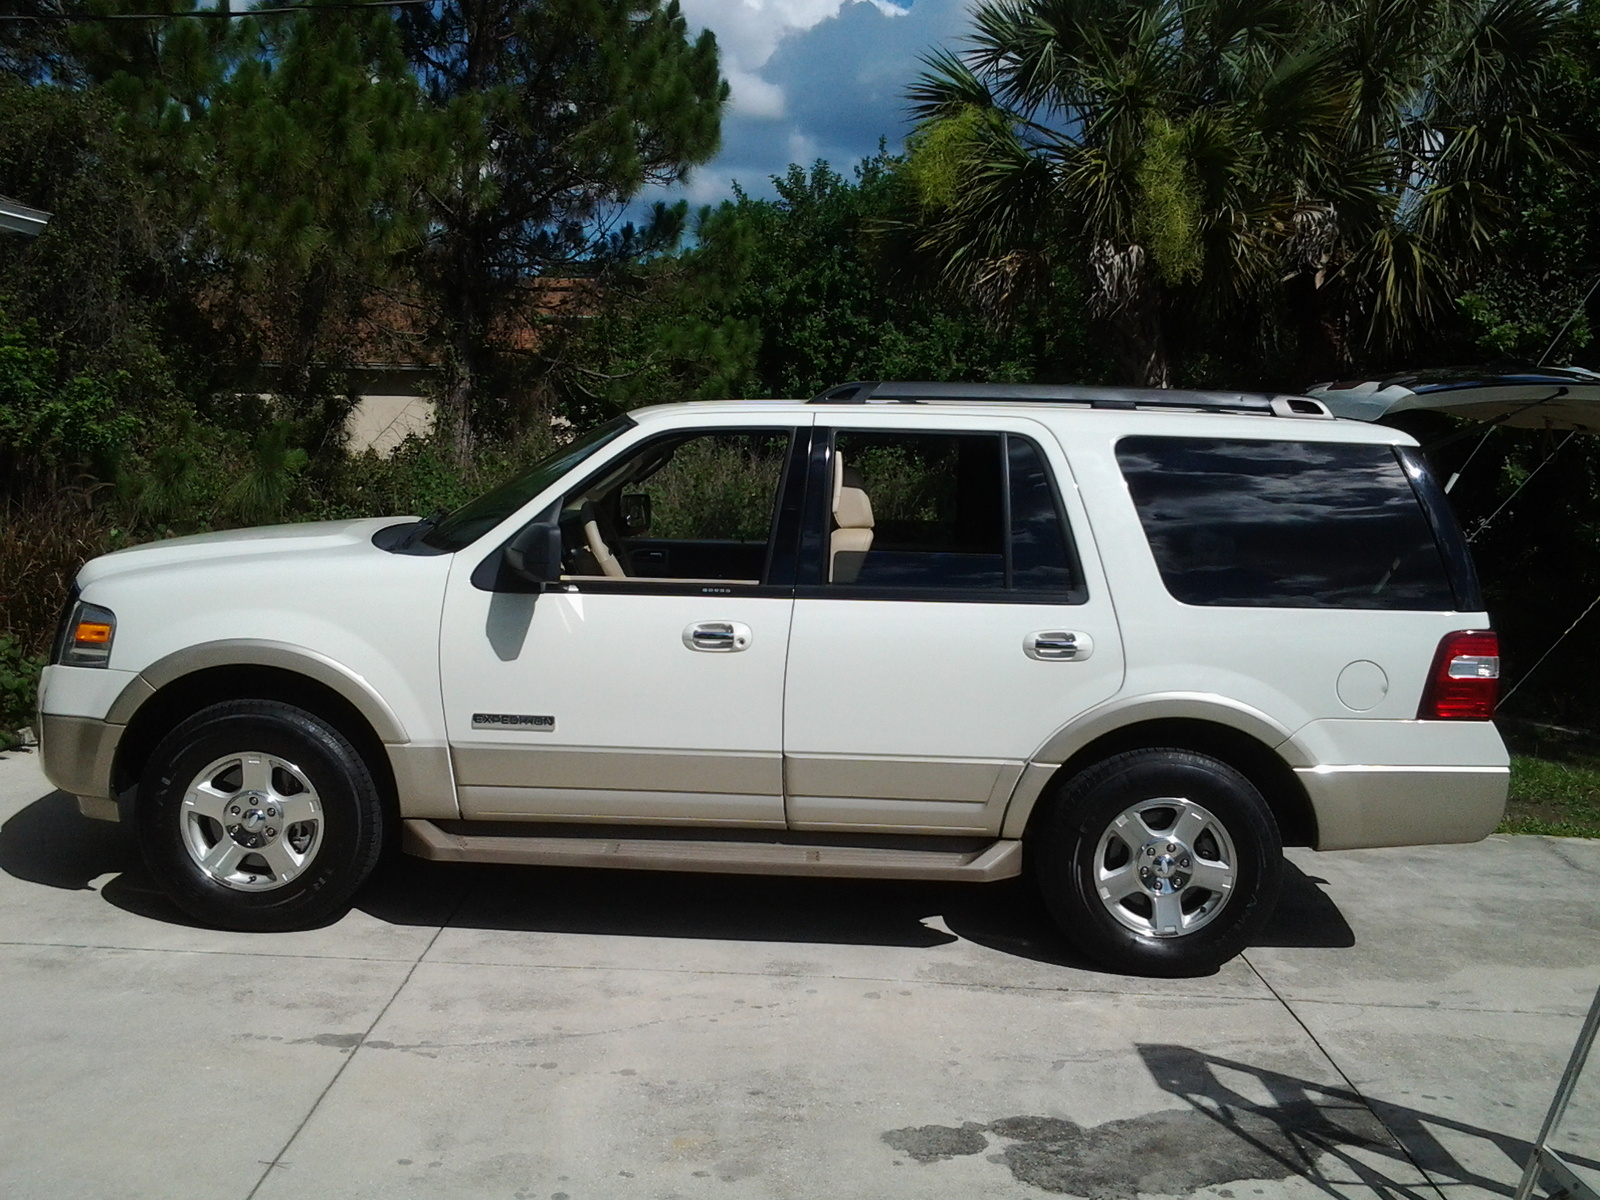 2008 ford expedition eddi bauer edition brand new balenced tires 2wd vibrate over 70mph